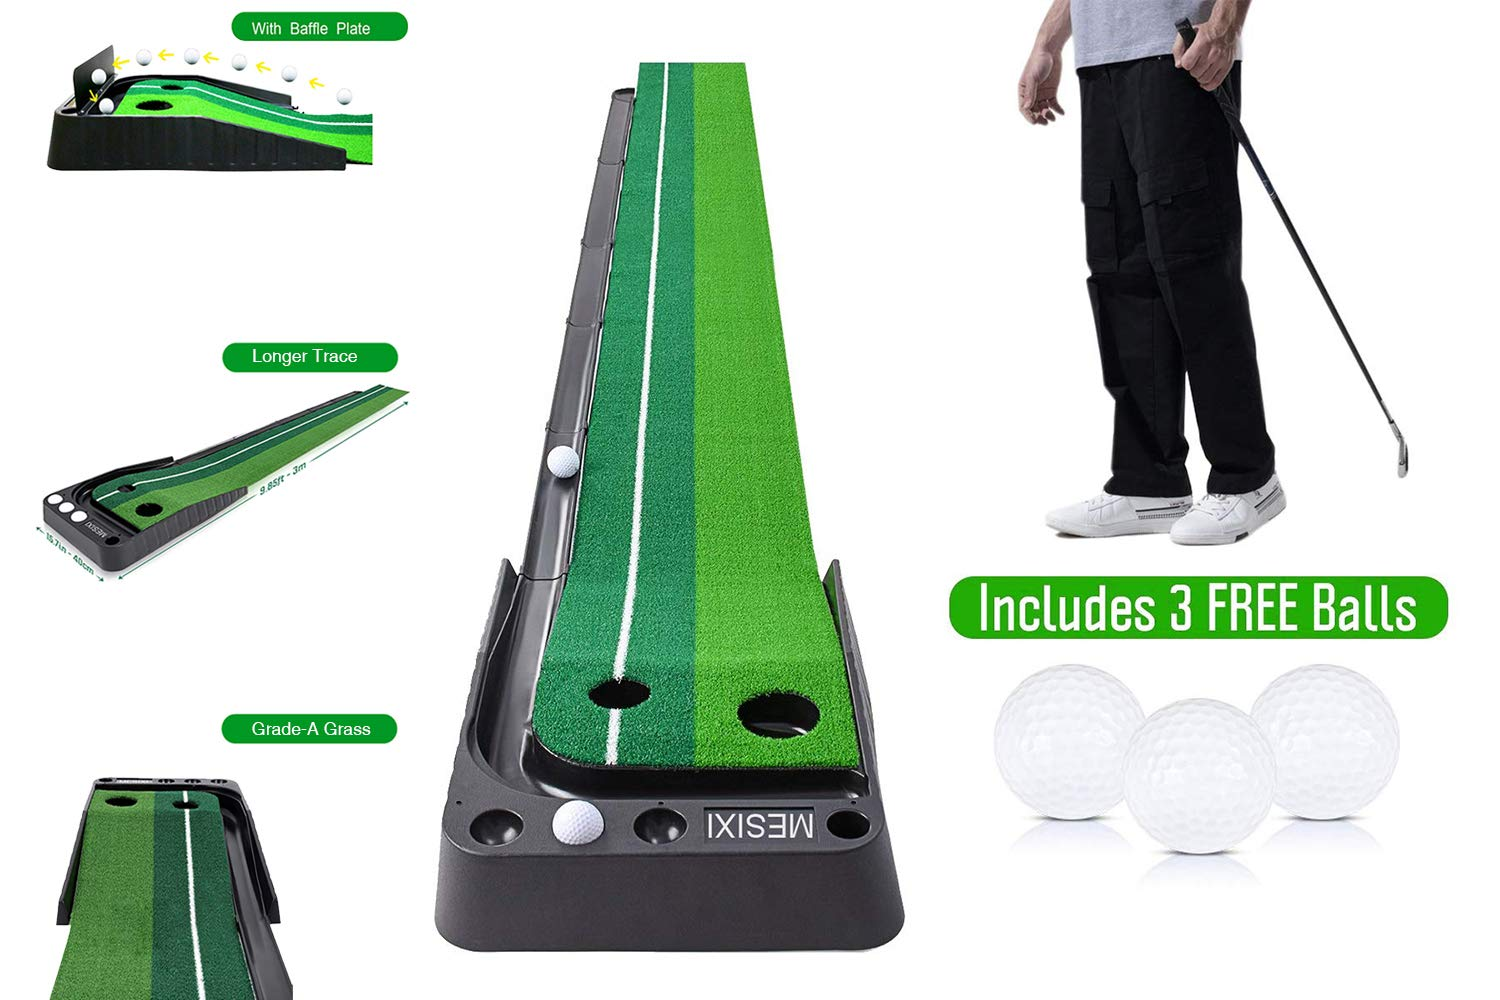 MESIXI Indoor/Outdoor Golf Putting Green Mat Portable Baffle Plate Auto Ball Return System Mini Golf Practice Training Aid Equipment Game and Golf Gifts for Men Home Office Outdoor Use by MESIXI